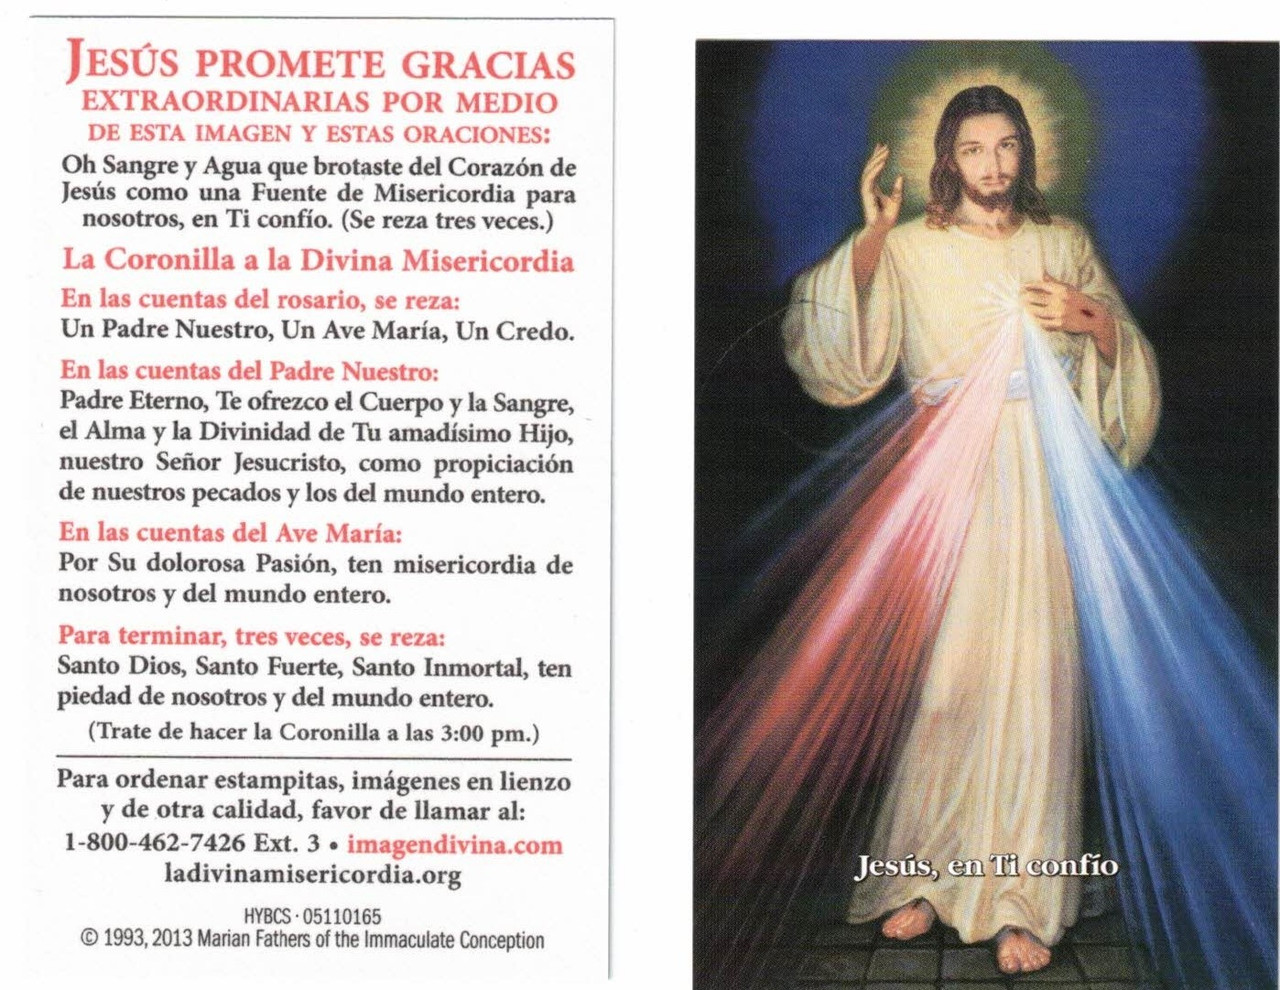 Divine Mercy Prayer Cards, 1000 card box, Spanish, Blue background, Modern Hyla Image, Free Priority Mail Shipping to USA locations